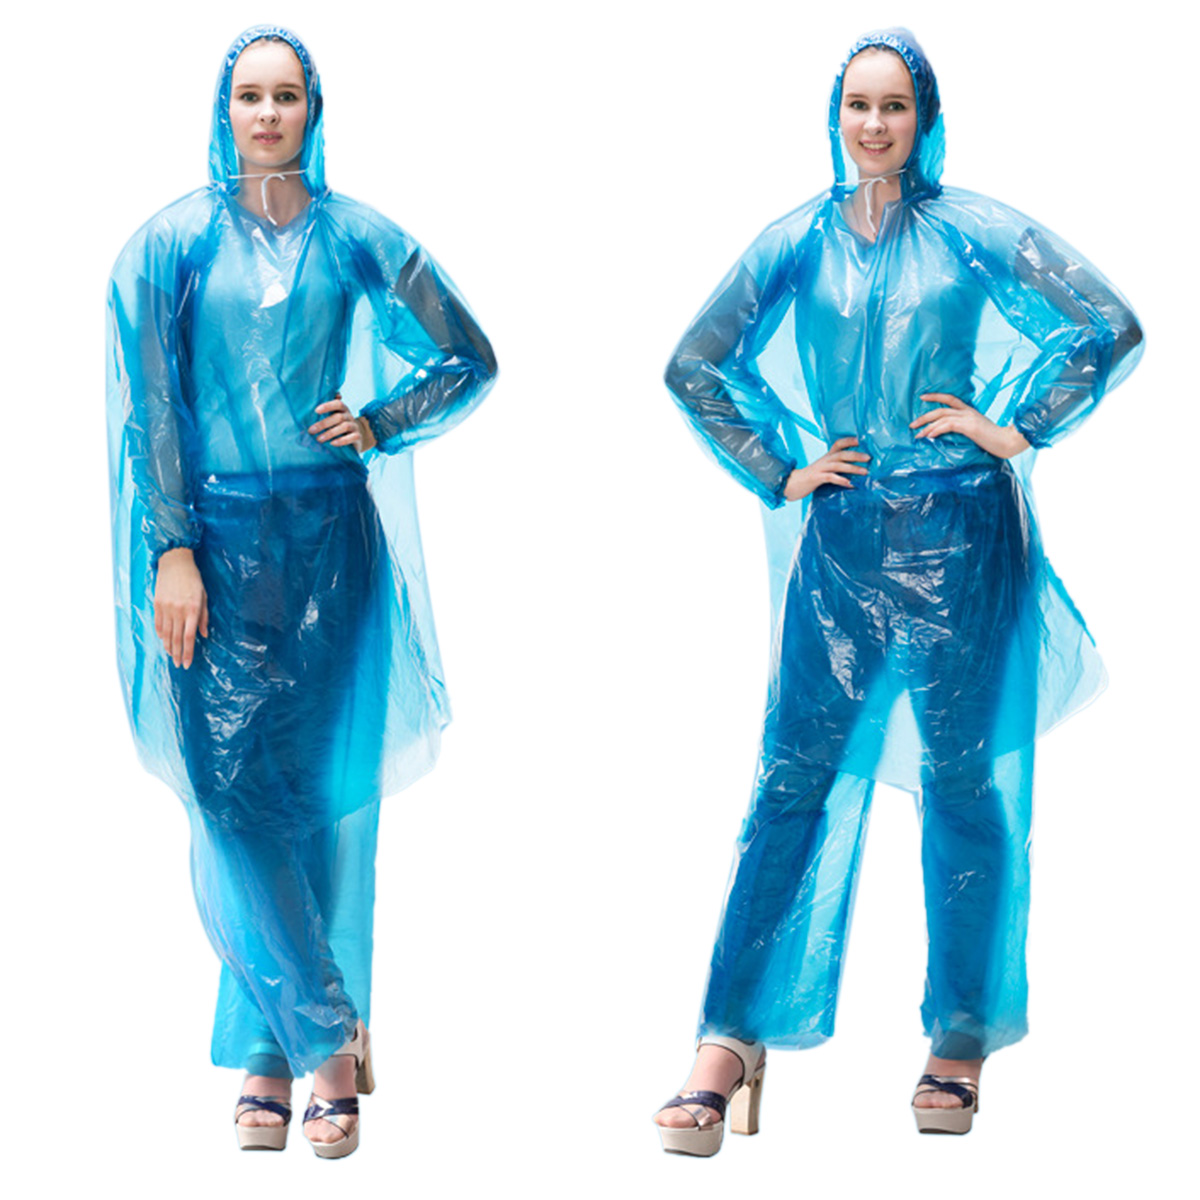 2020 Anti-Dust Daliy Reusable Coverall Protective Clothing Hazmat Suit Pants Split Type Raincover Drifting Hooded Raincoats Sets